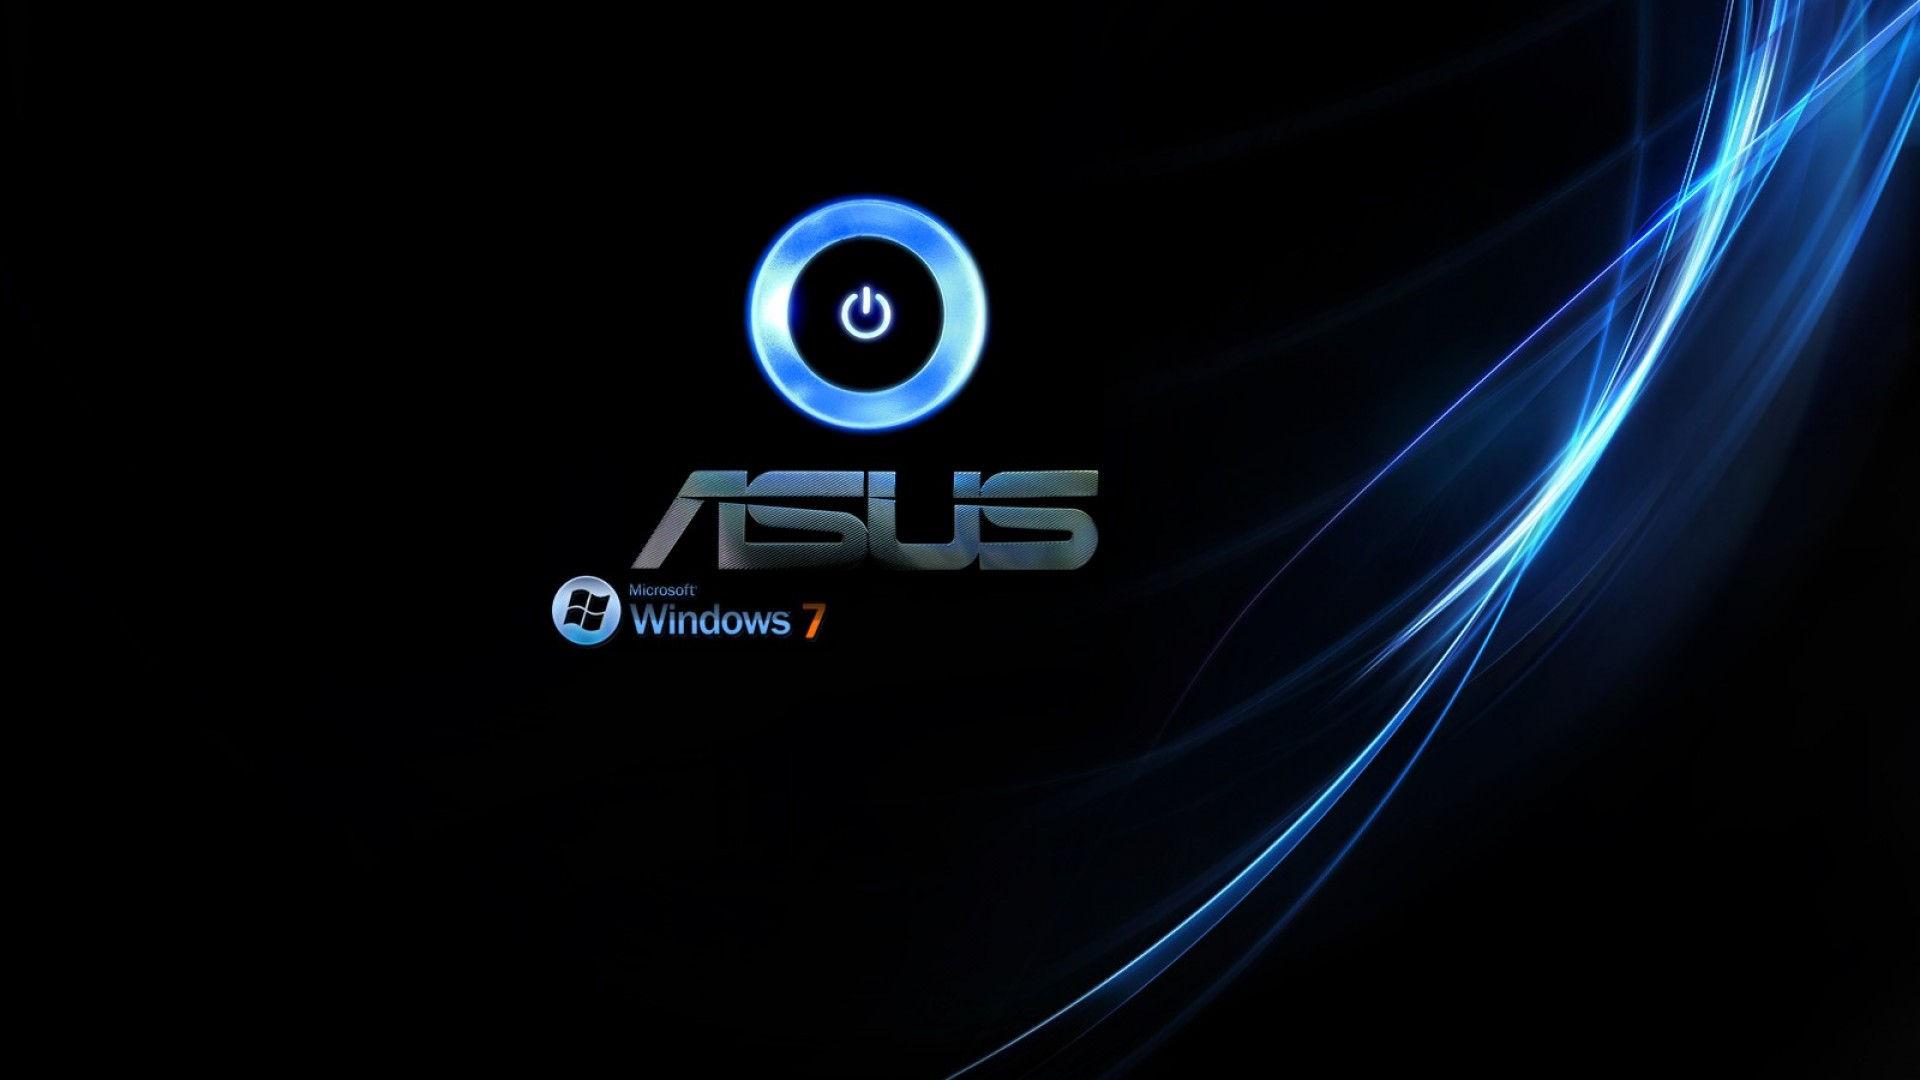 ASUS Wallpaper 1920x1080 HD Wallpaper Jootix Wallpapers 1920x1080